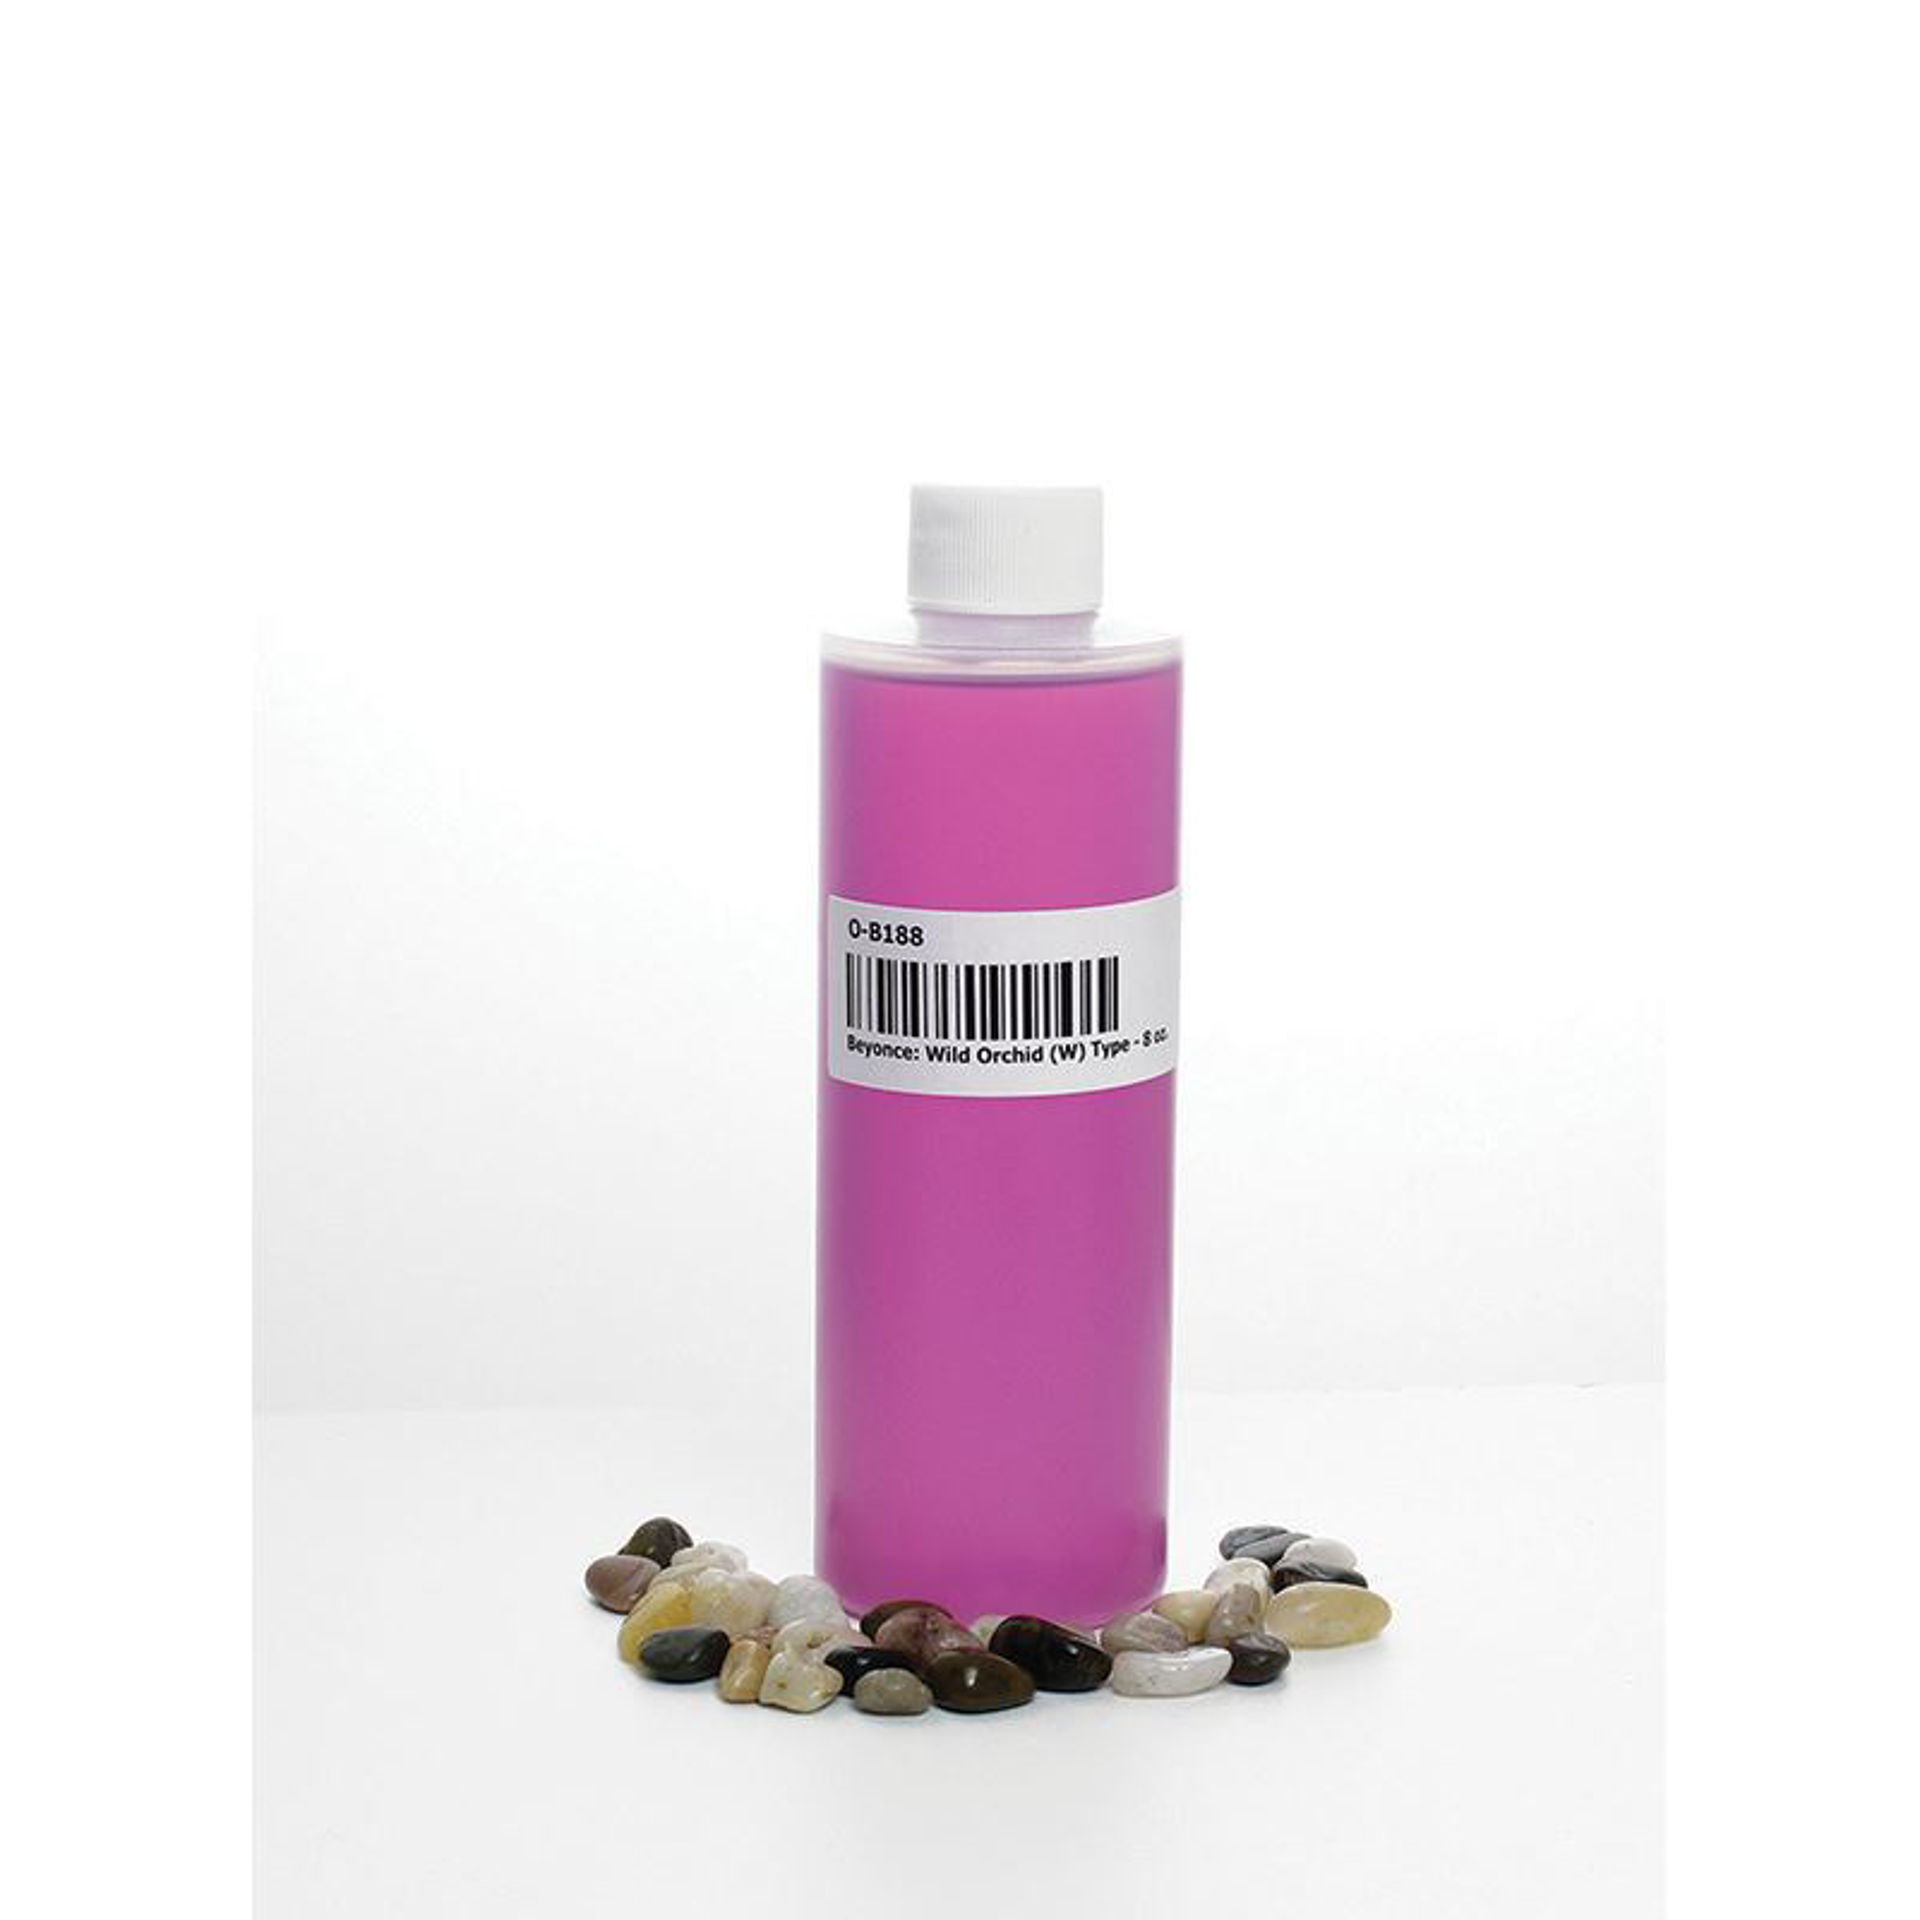 Picture of Beyonce: Wild Orchid (W) Type - 8 oz.